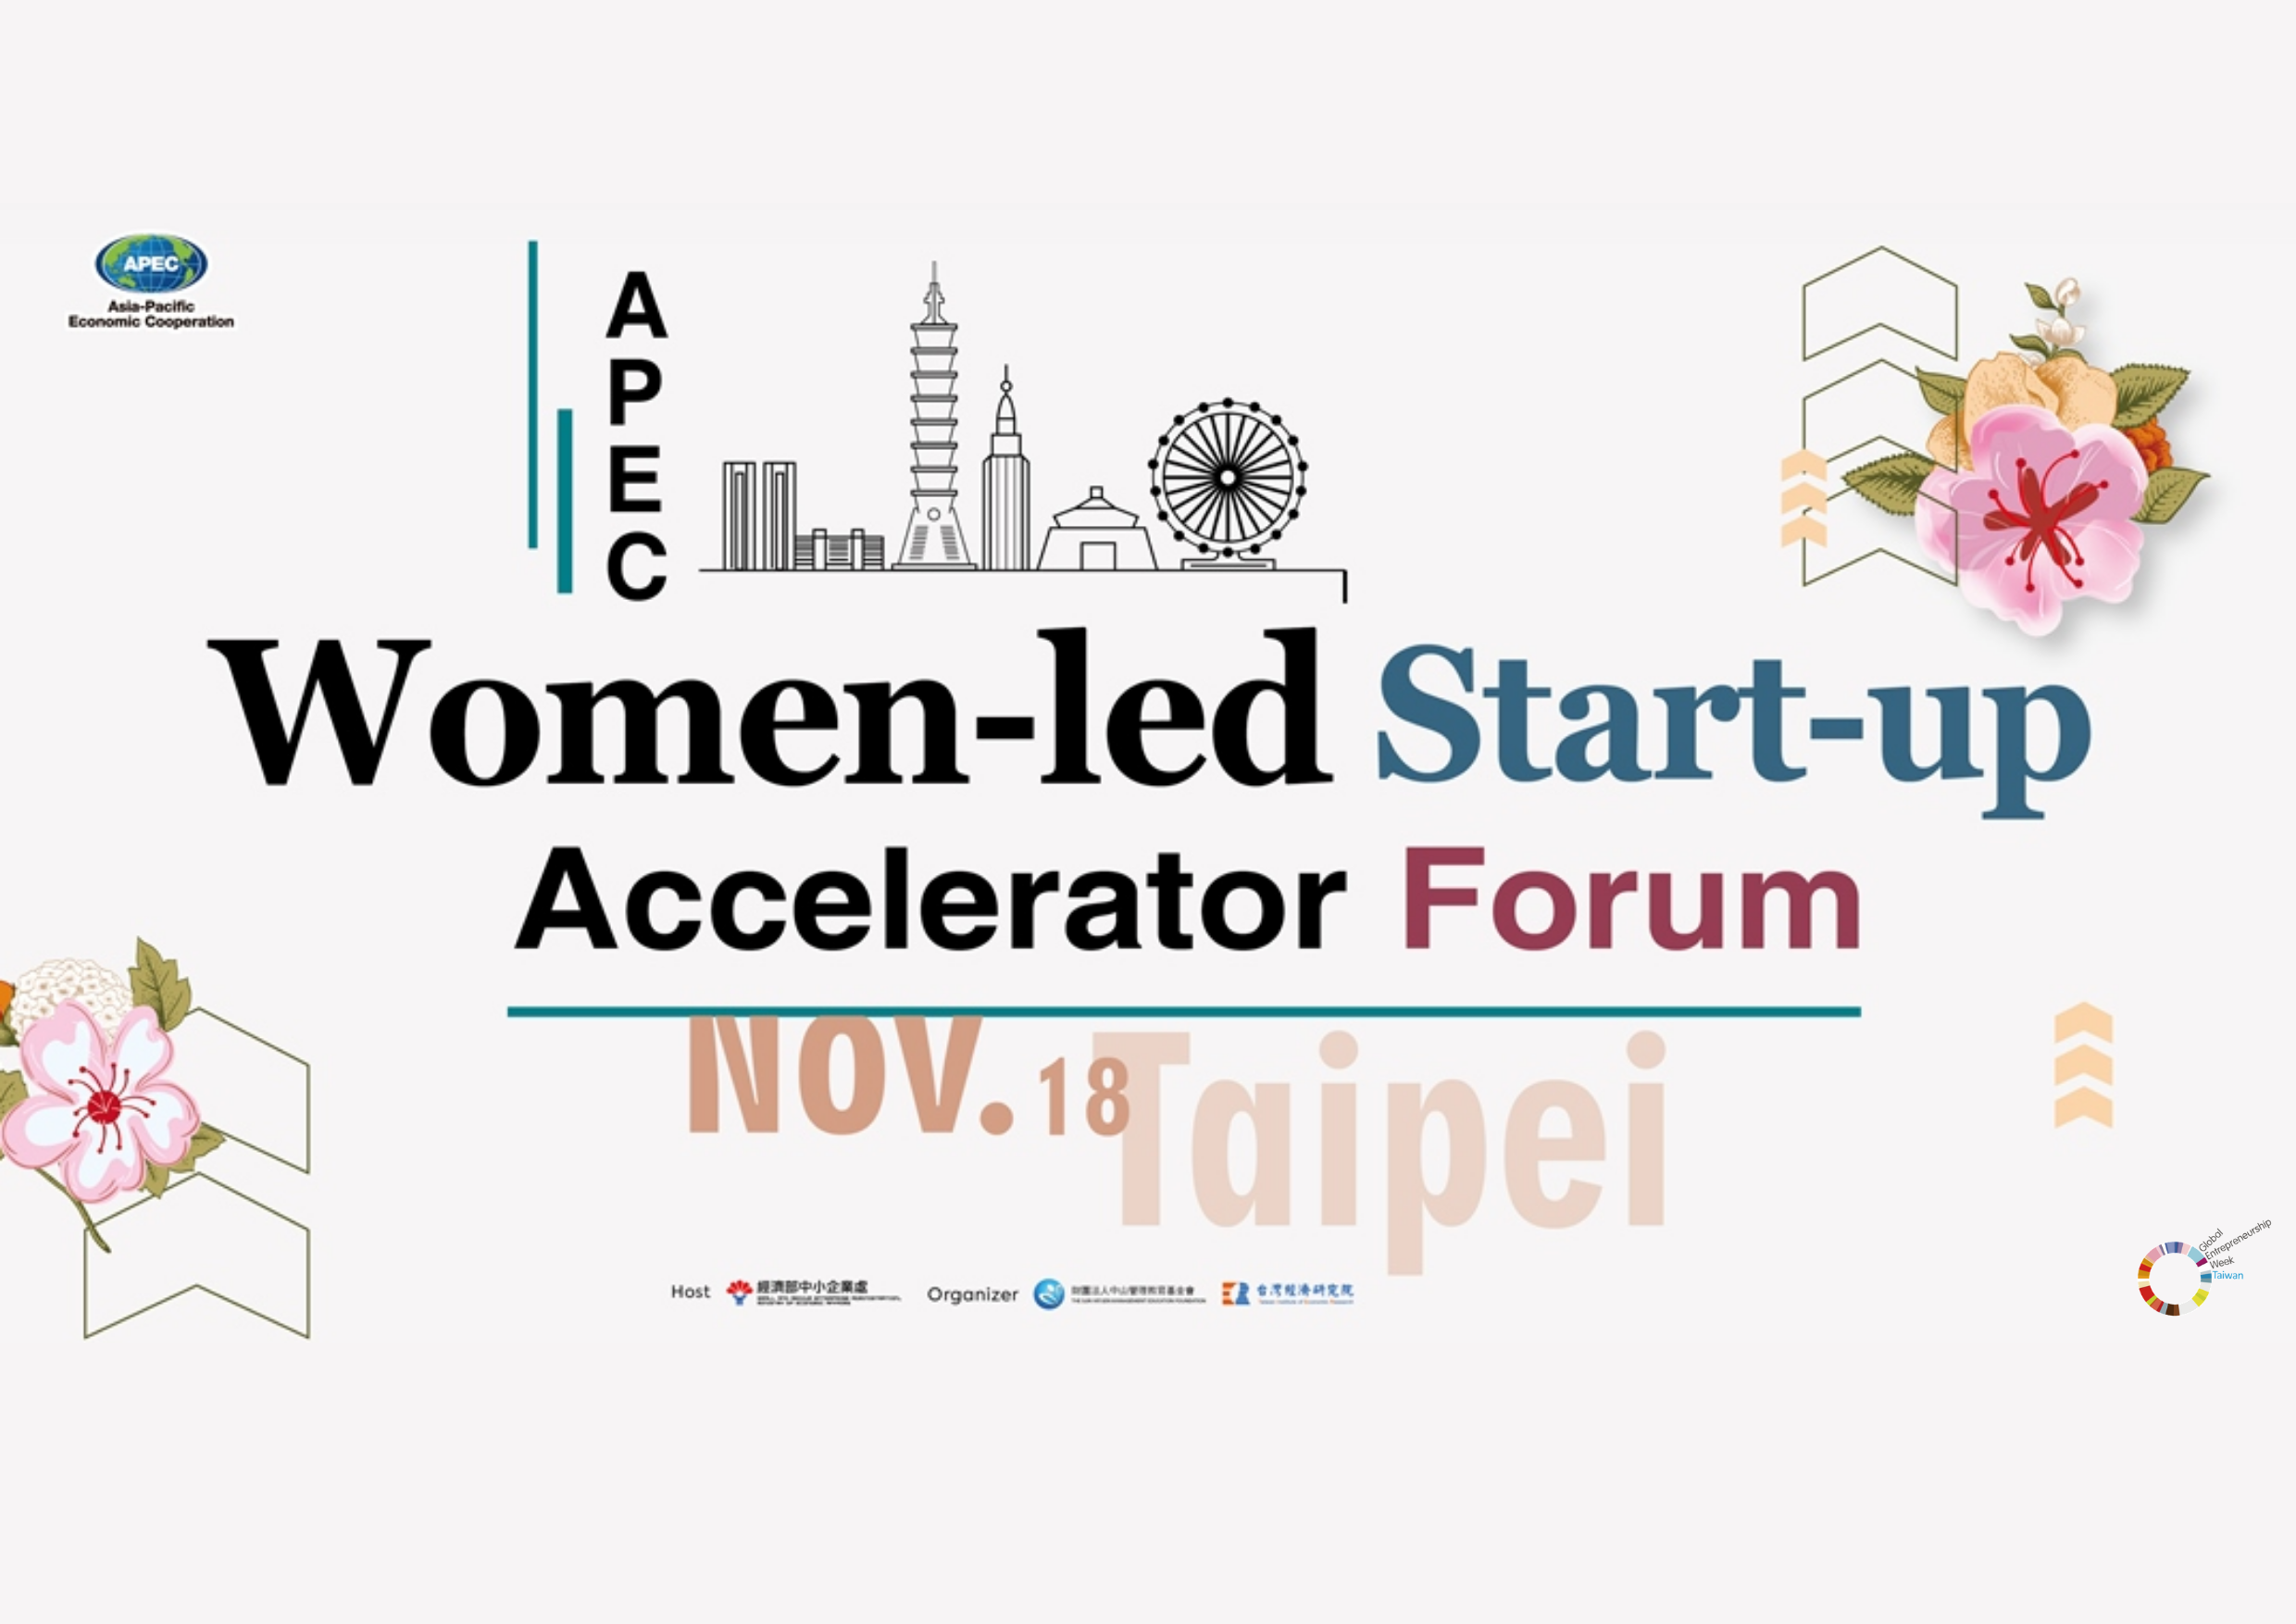 APEC Women-Led Start-Up Accelerator Forum